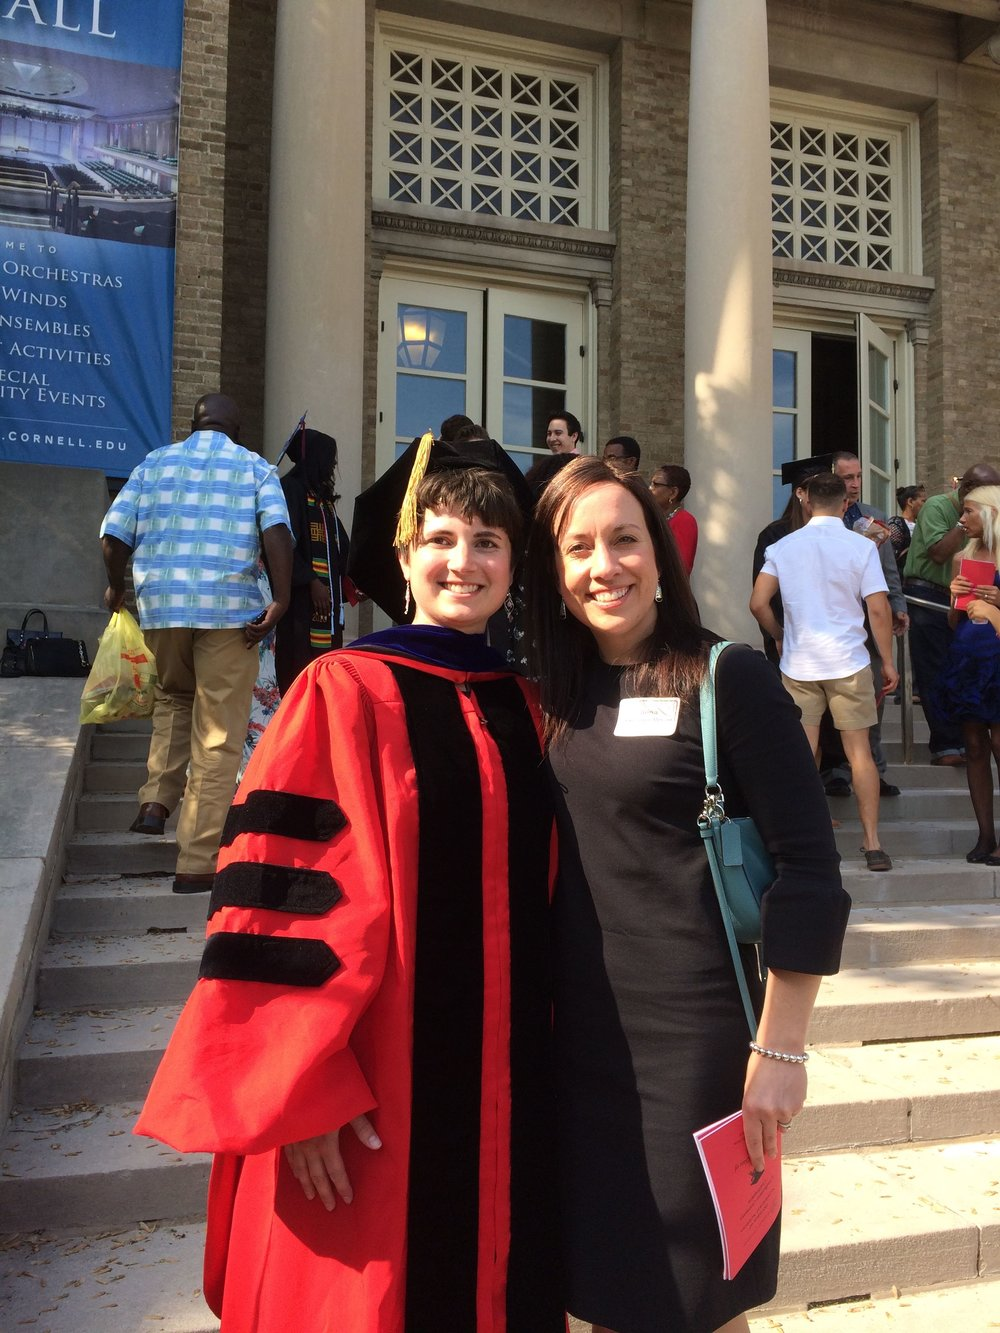 Emily Riddle and Dr. Thalacker-Mercer at the Division of Nutritional Sciences Graduation May 2018